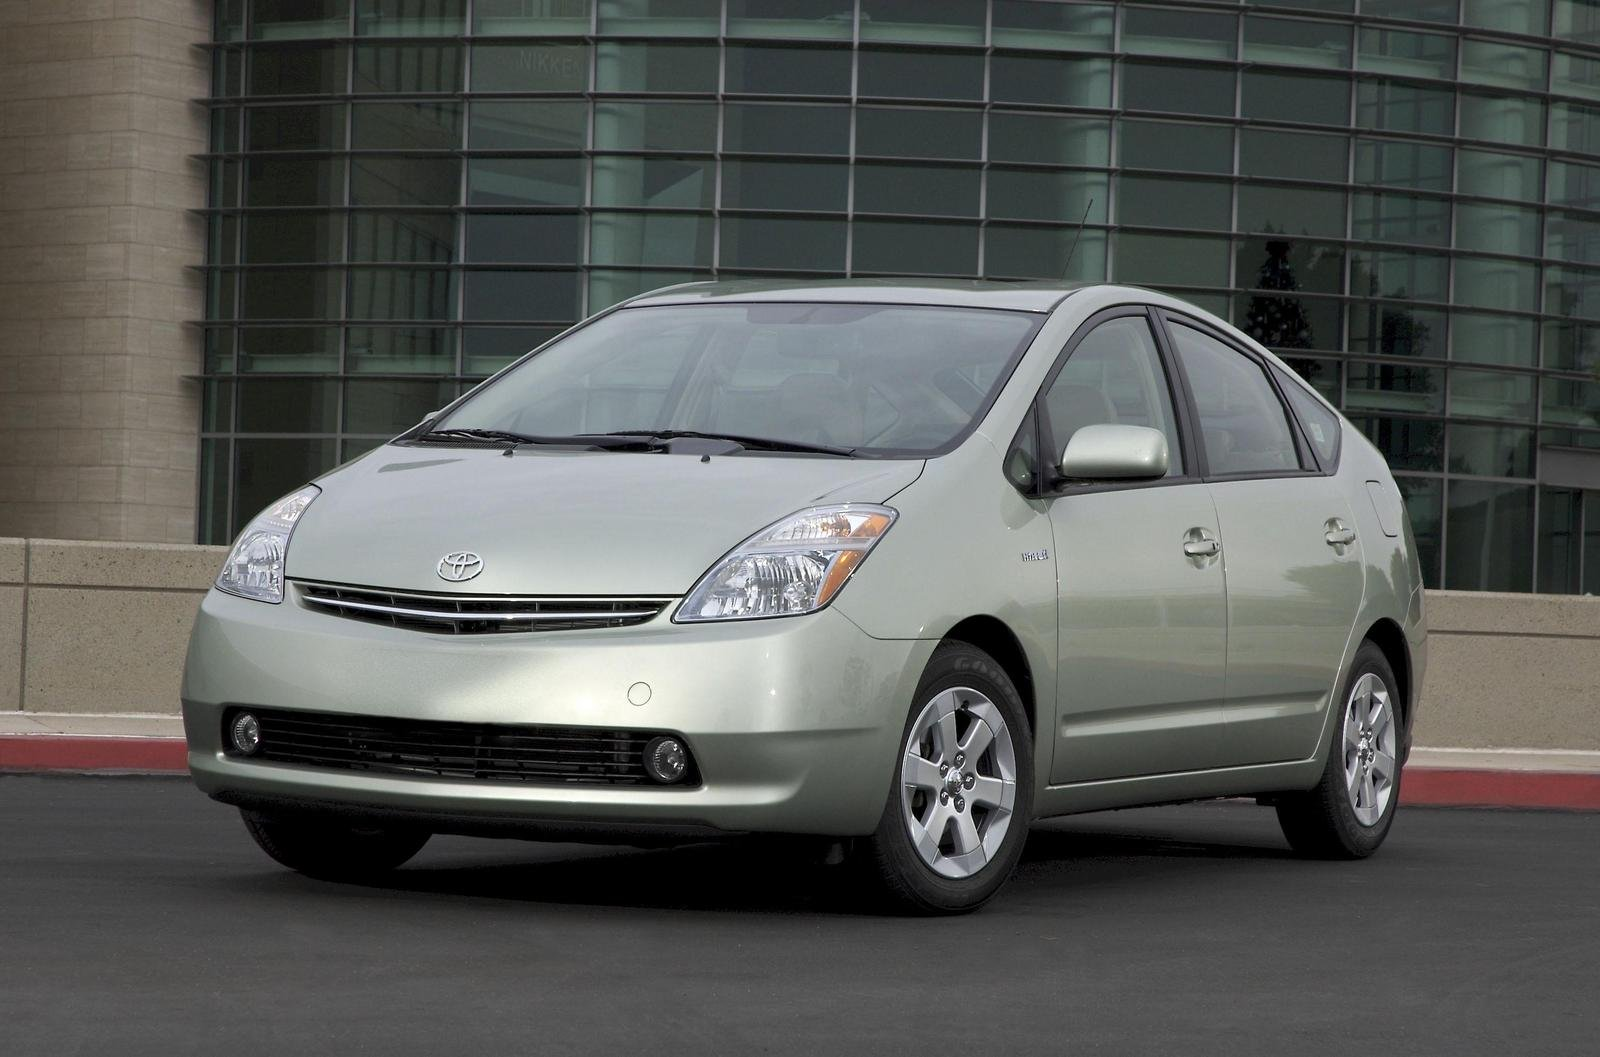 2006 toyota prius review top speed. Black Bedroom Furniture Sets. Home Design Ideas